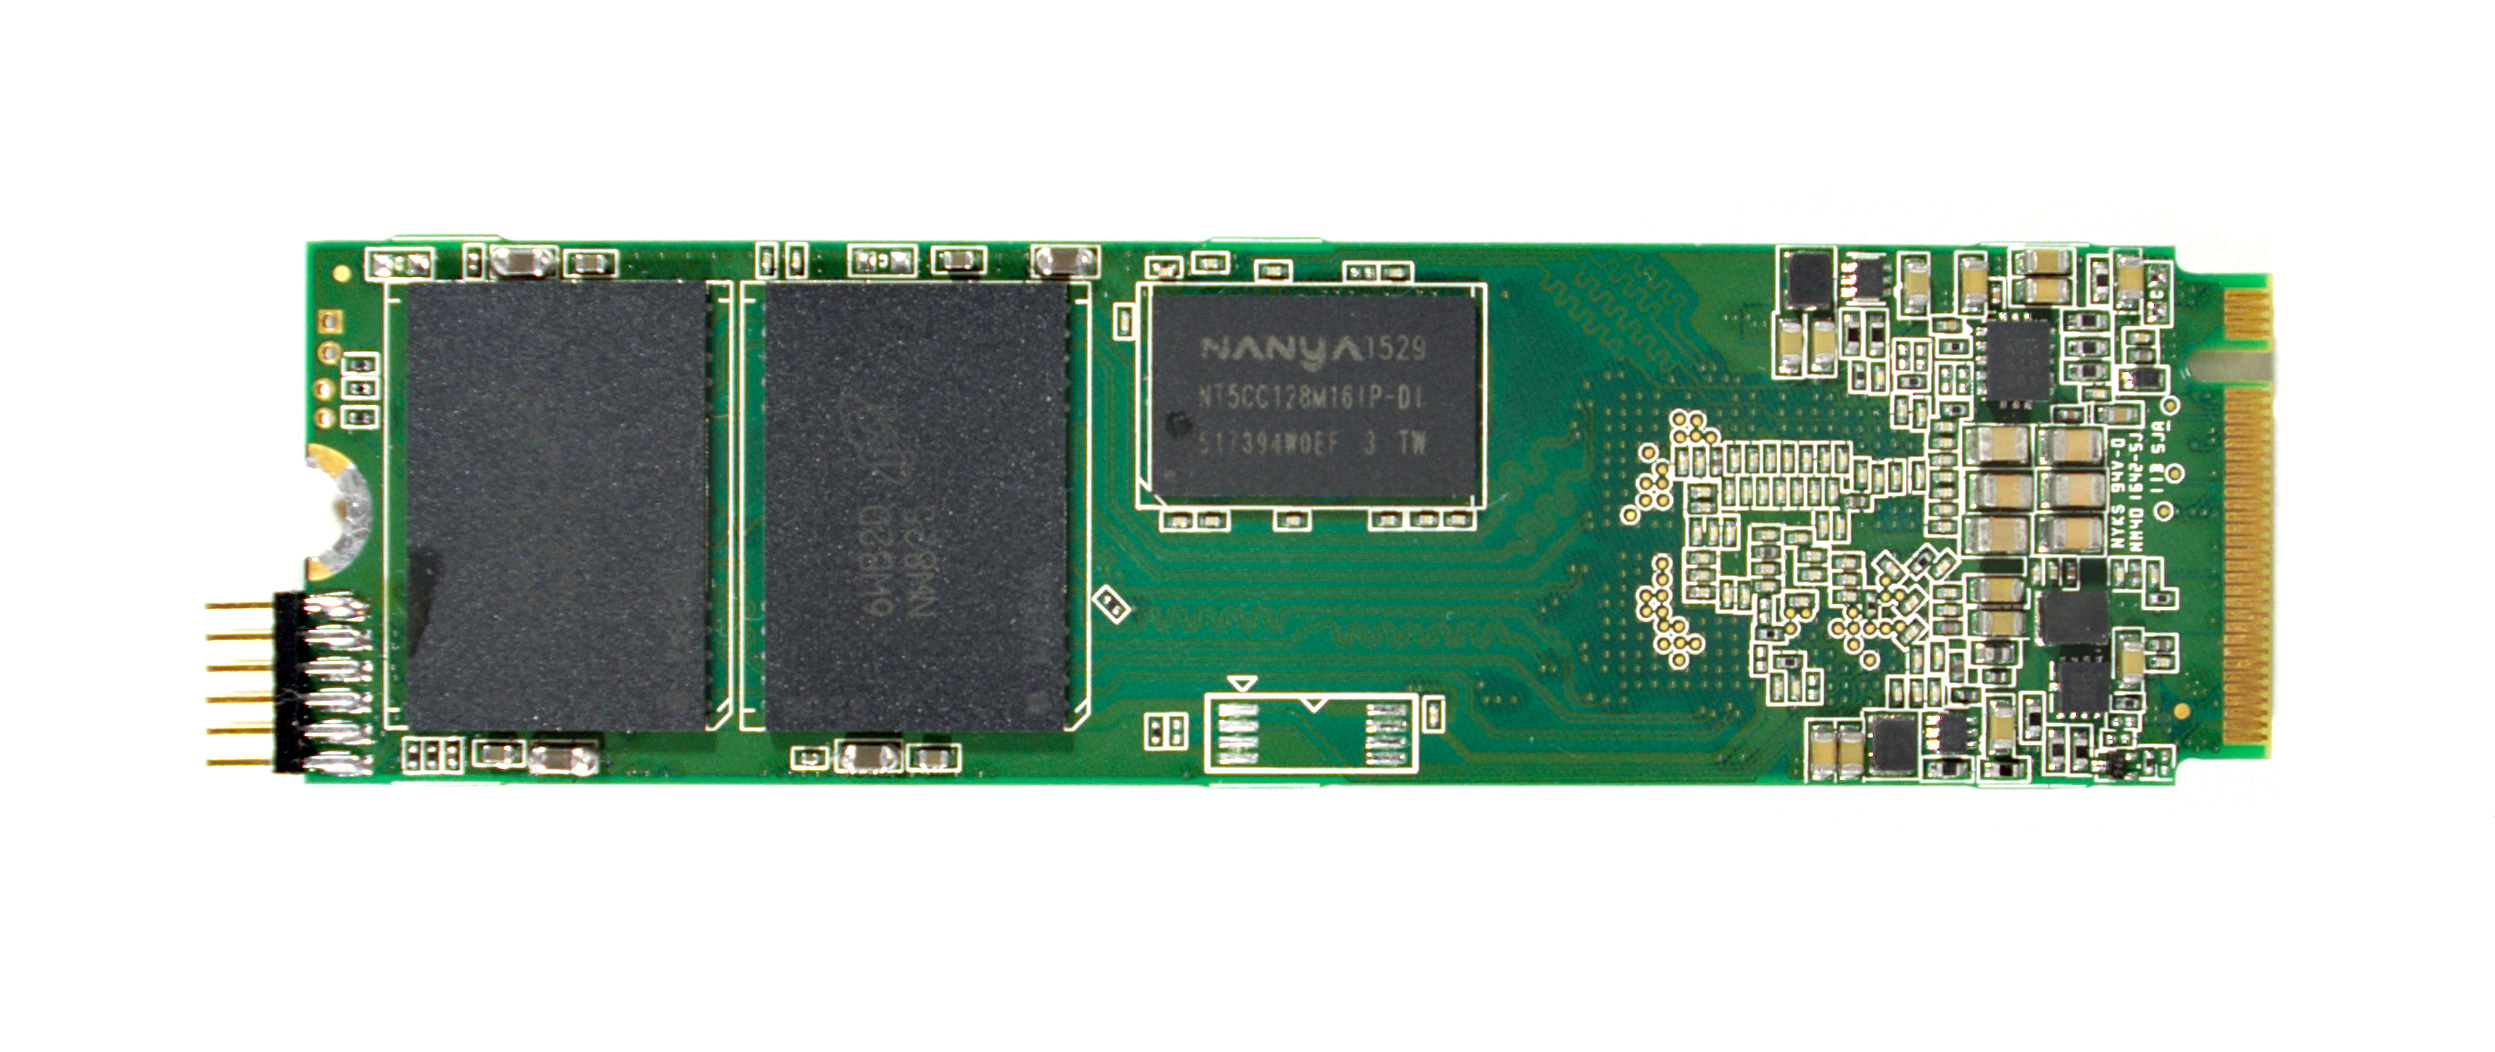 Previewing Silicon Motion Sm2260 Nvme Controller With 3d Mlc Nand Circuit Board 512gb